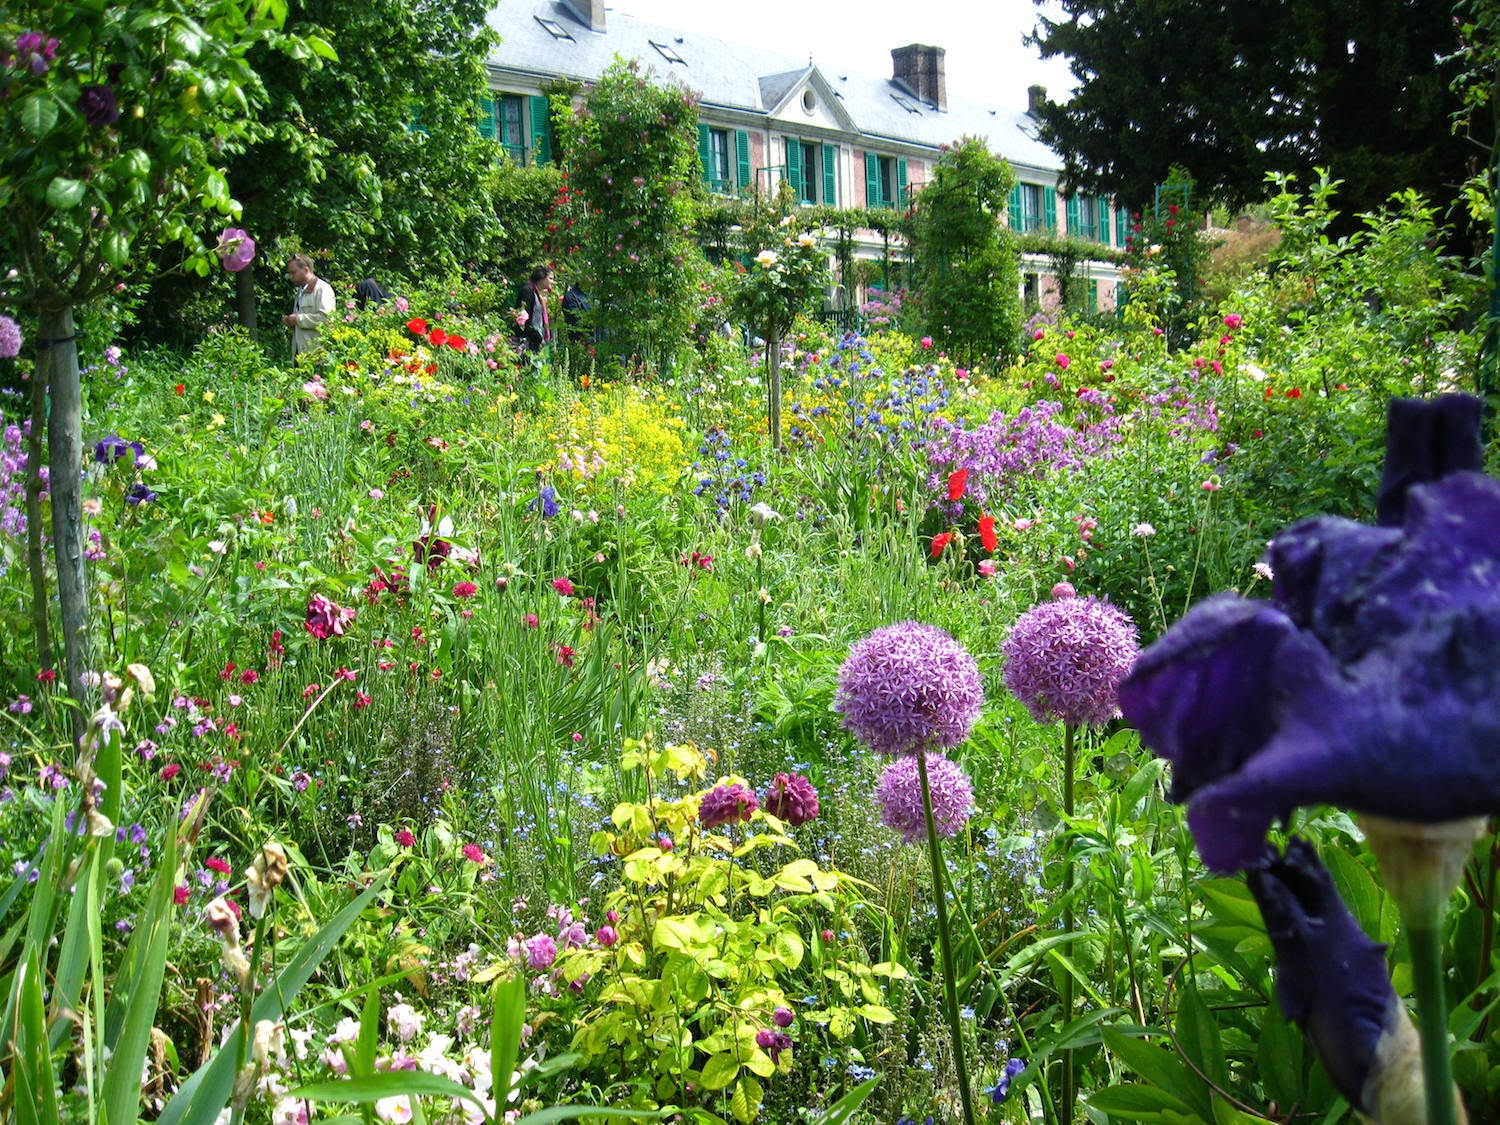 Monet's house and garden